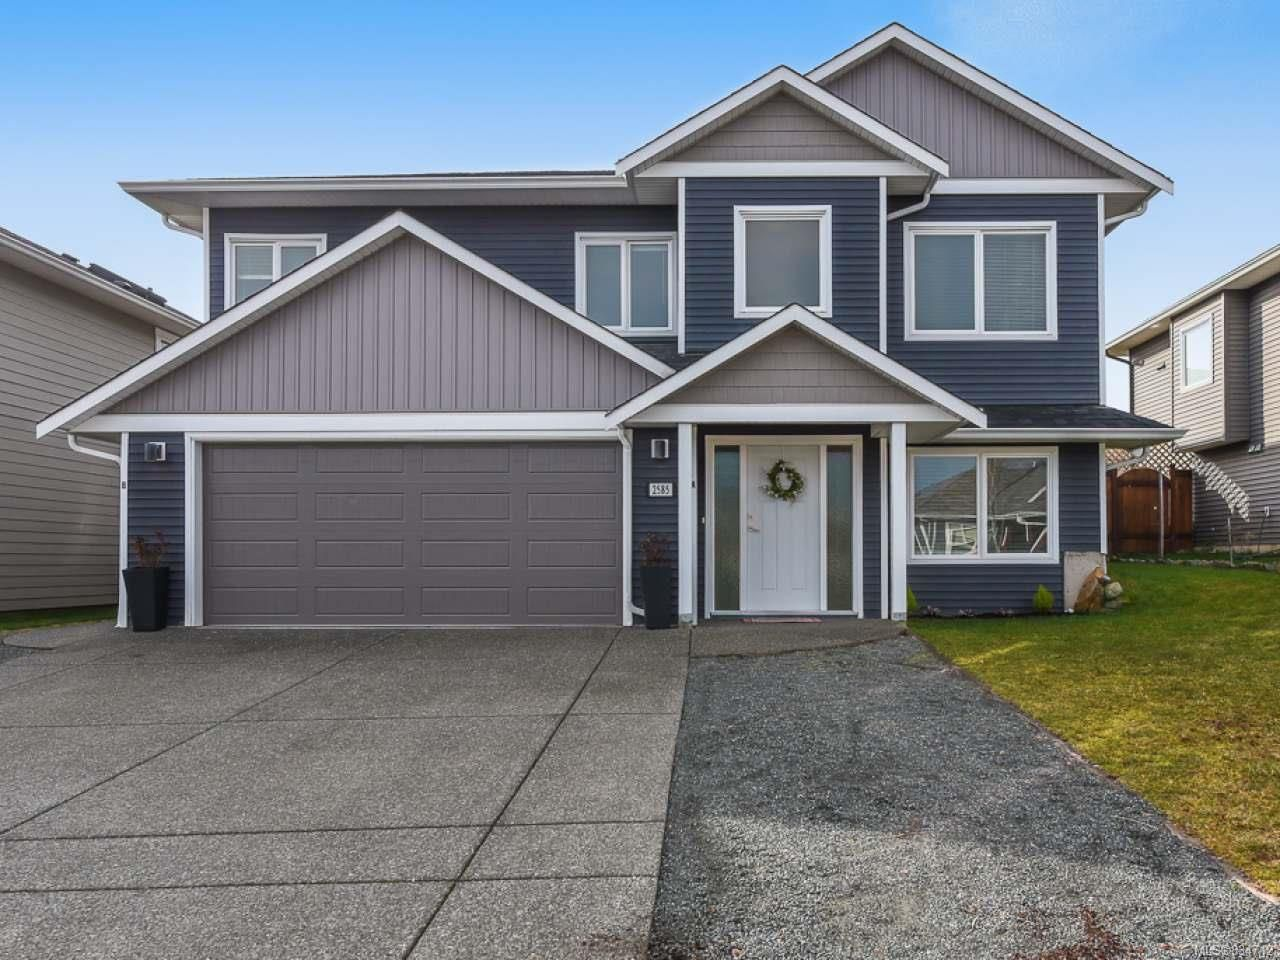 Main Photo: 2585 Kendal Ave in CUMBERLAND: CV Cumberland House for sale (Comox Valley)  : MLS®# 834712